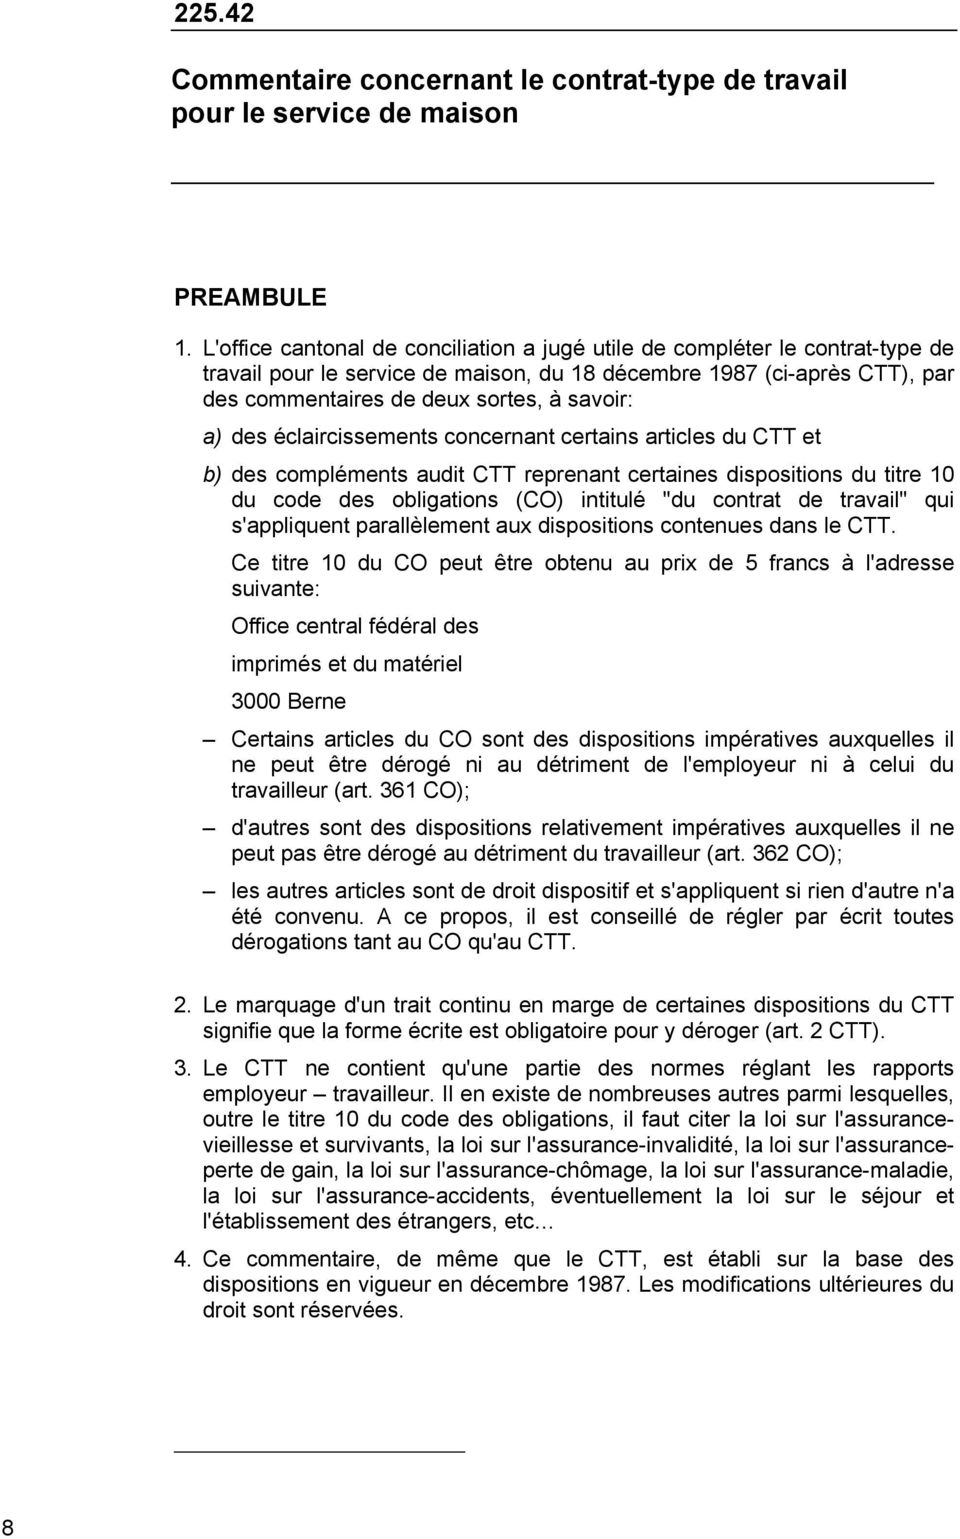 "des éclaircissements concernant certains articles du CTT et b) des compléments audit CTT reprenant certaines dispositions du titre 10 du code des obligations (CO) intitulé ""du contrat de travail"" qui"